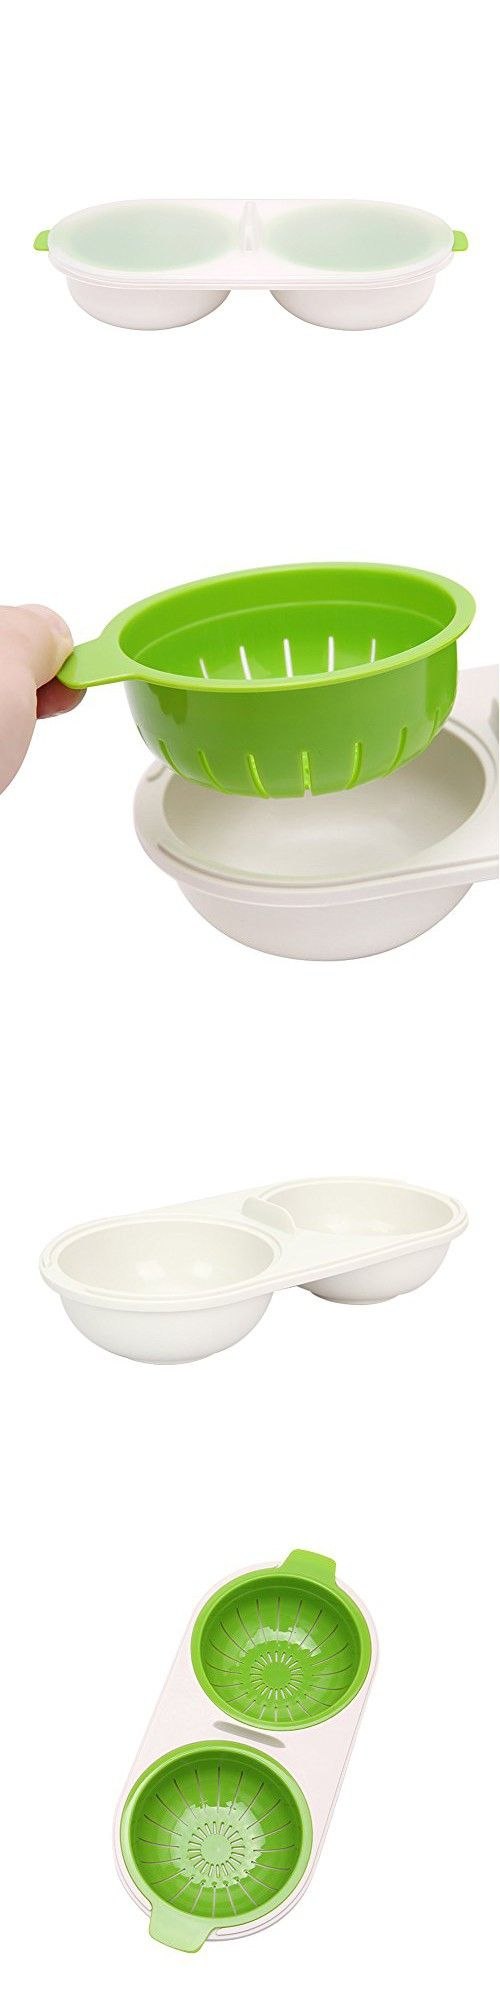 Egg Poacher, Yummy Sam 2-Cup Silicone Egg Poacher Cups Poaching Pods for Cooking Microwave Poached Eggs, Microwave or Stovetop Egg Cooker (Green)